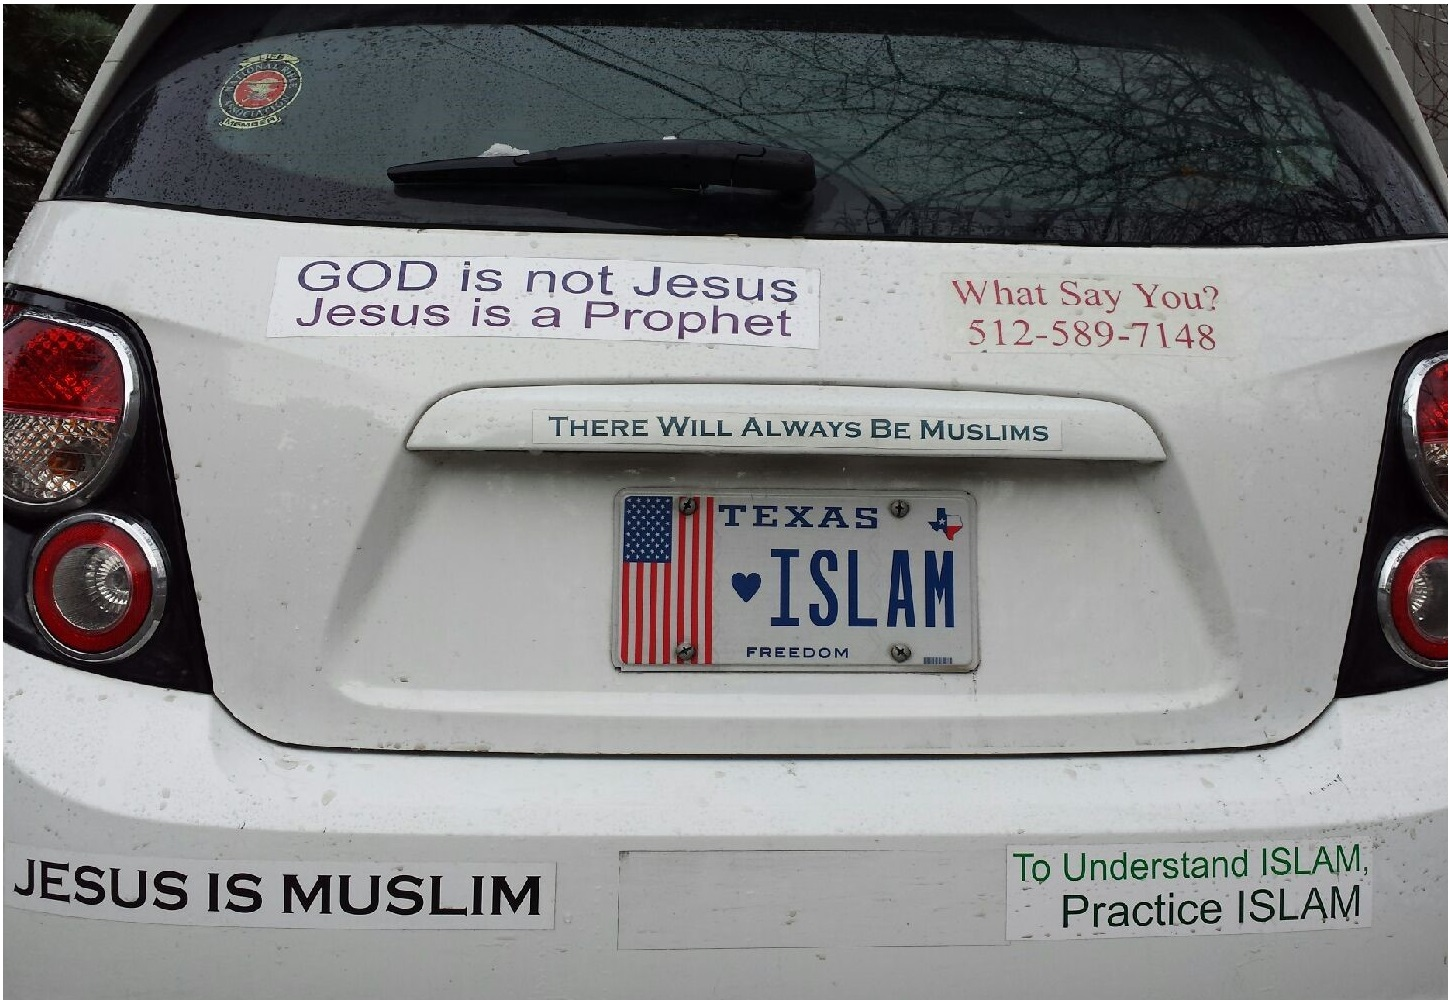 God is not Jesus, Jesus is a Prophet; What say you 512-589-7148; There will Always Be Muslims; Jesus is Muslim; To understand Islam, practice Islam.